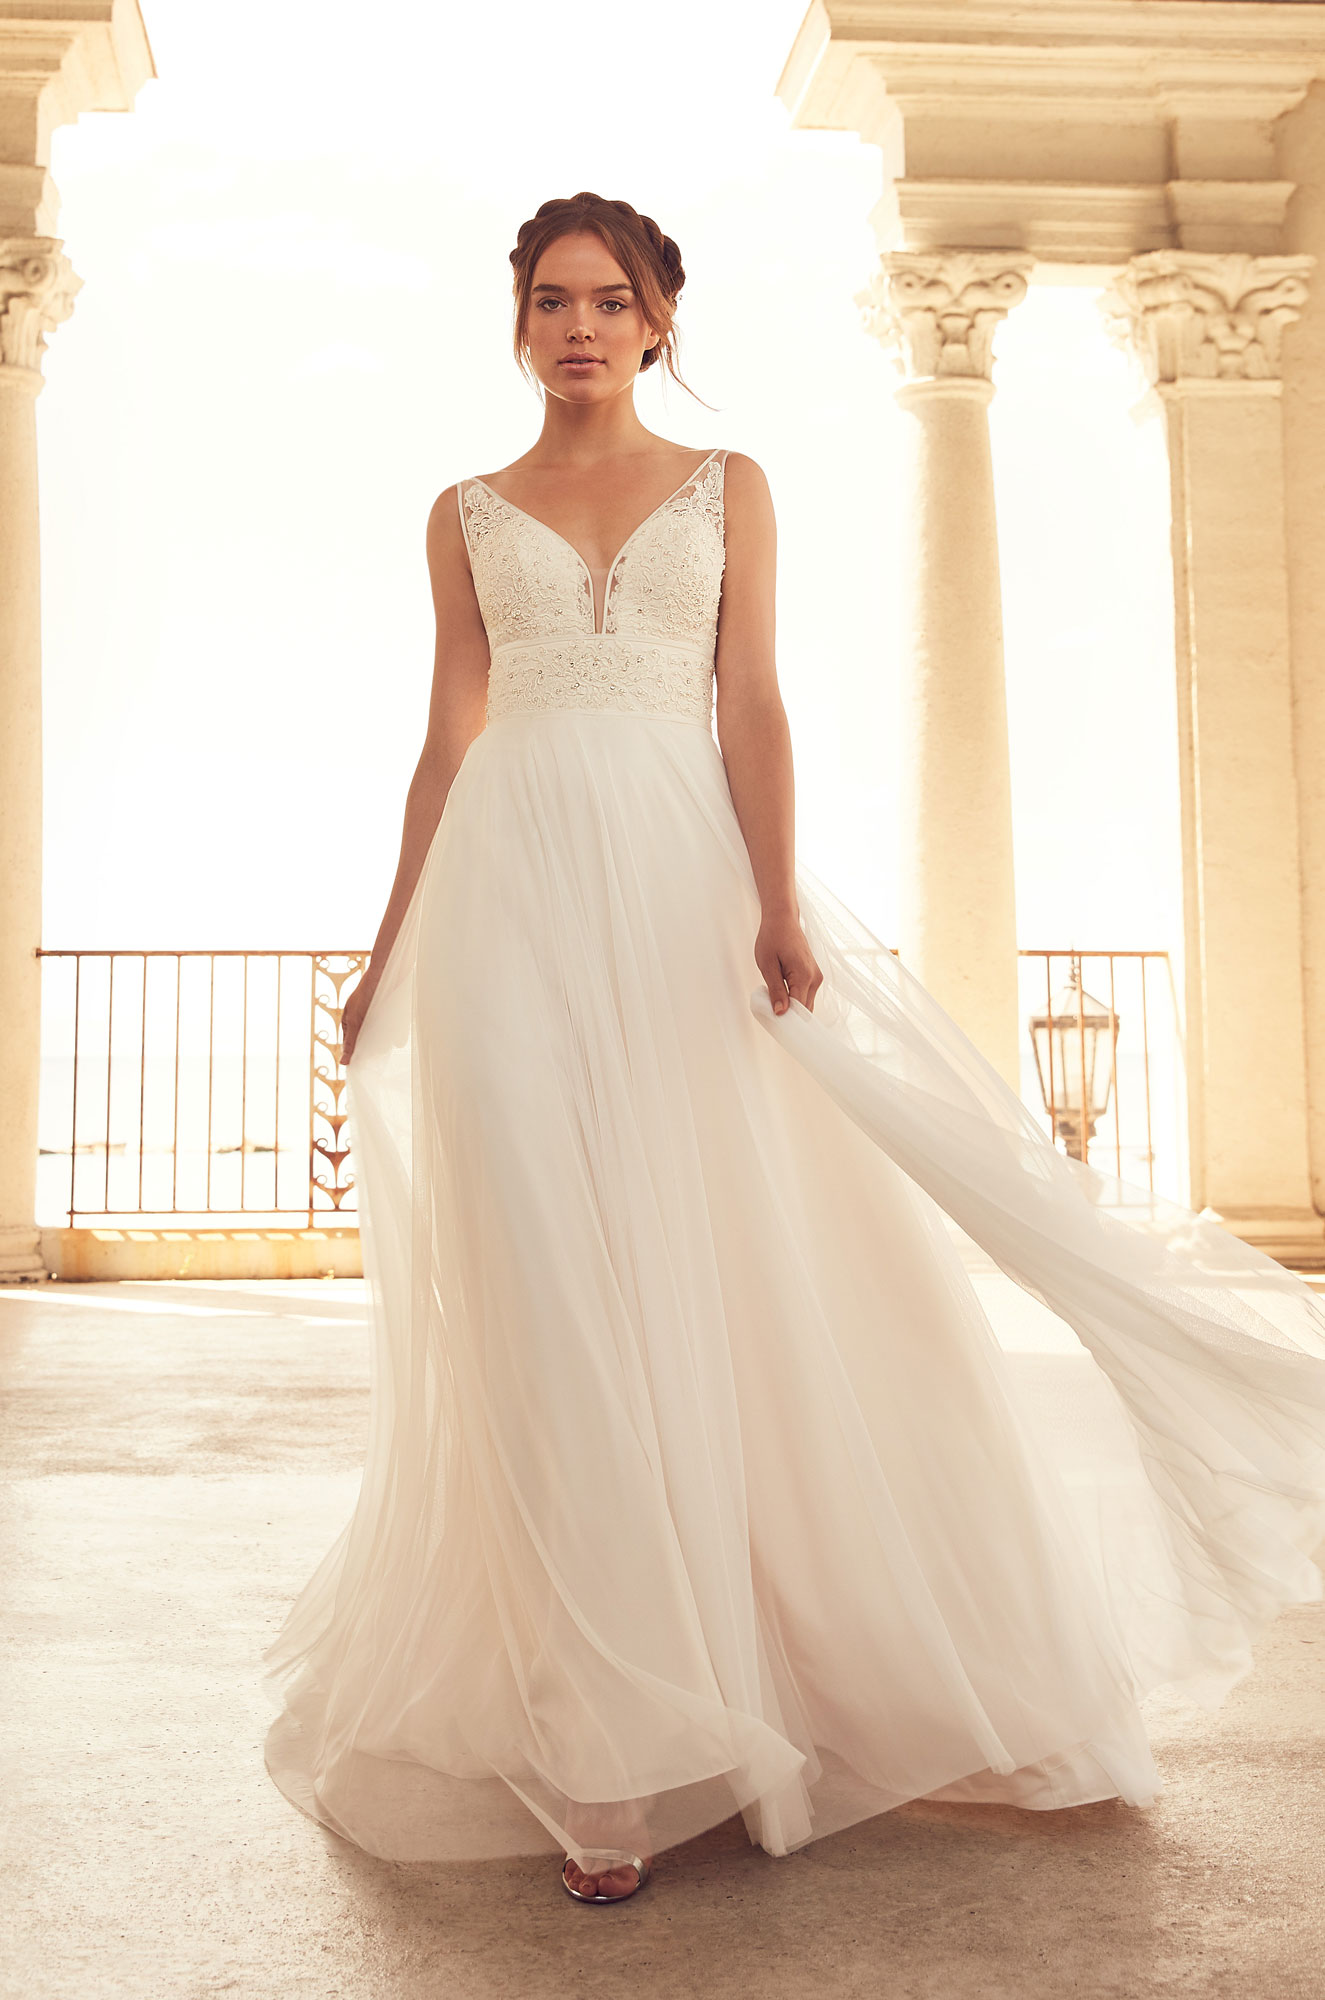 Mira Couture Paloma Blanca 4788 Wedding Dress Bridal Gown Chicago Boutique Front